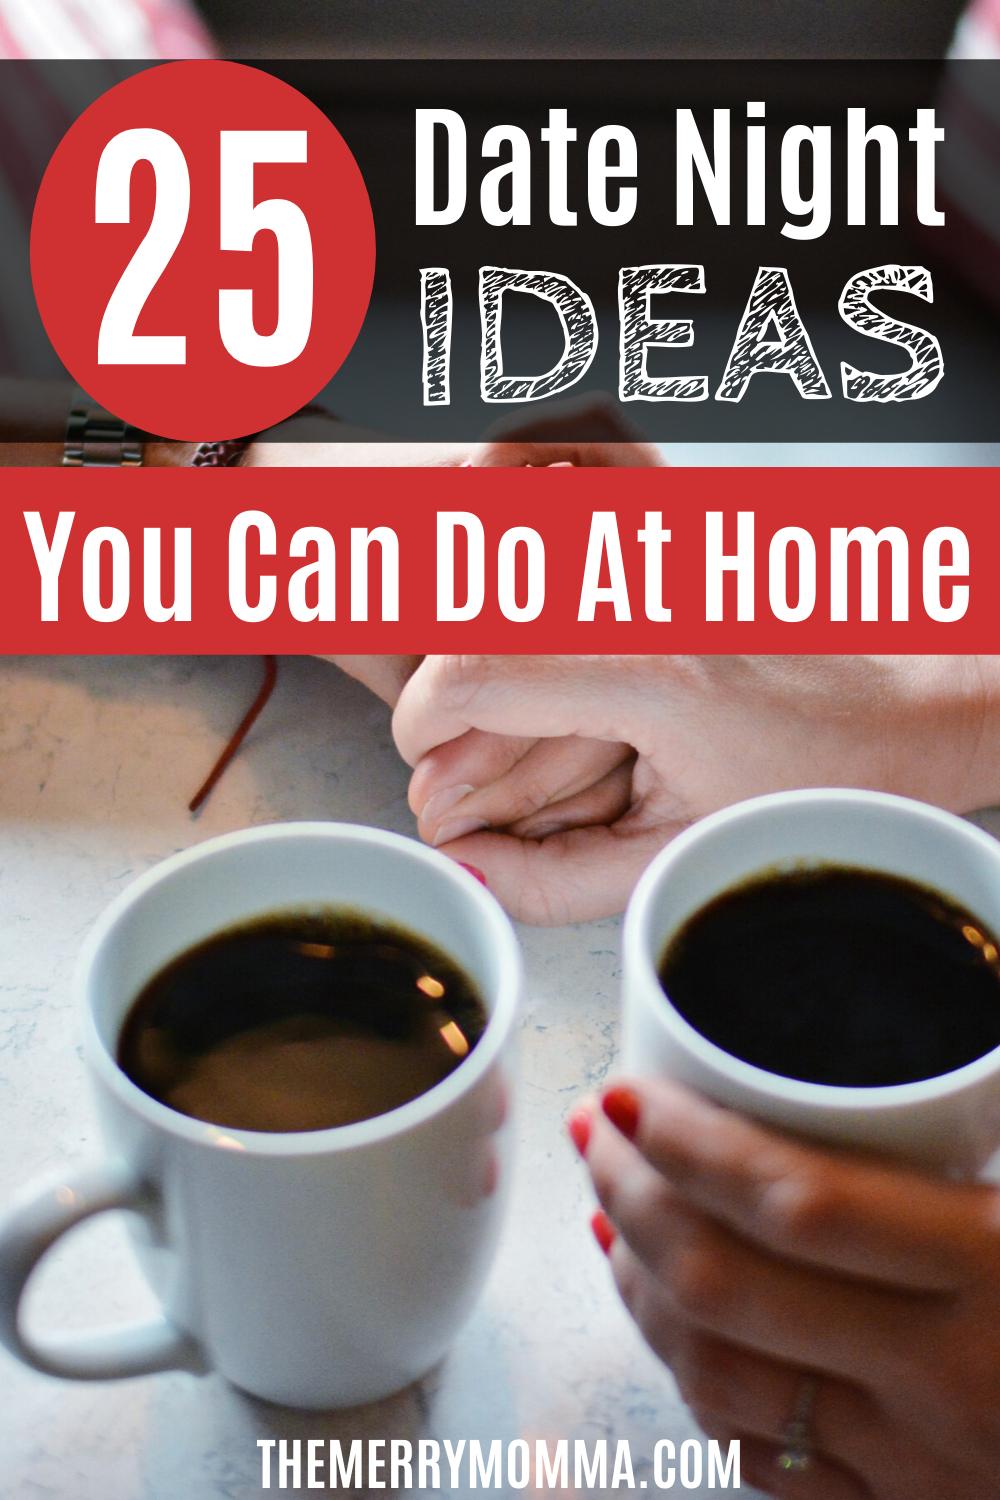 25 Date Night Ideas You Can Do at Home | At-Home Date Nights